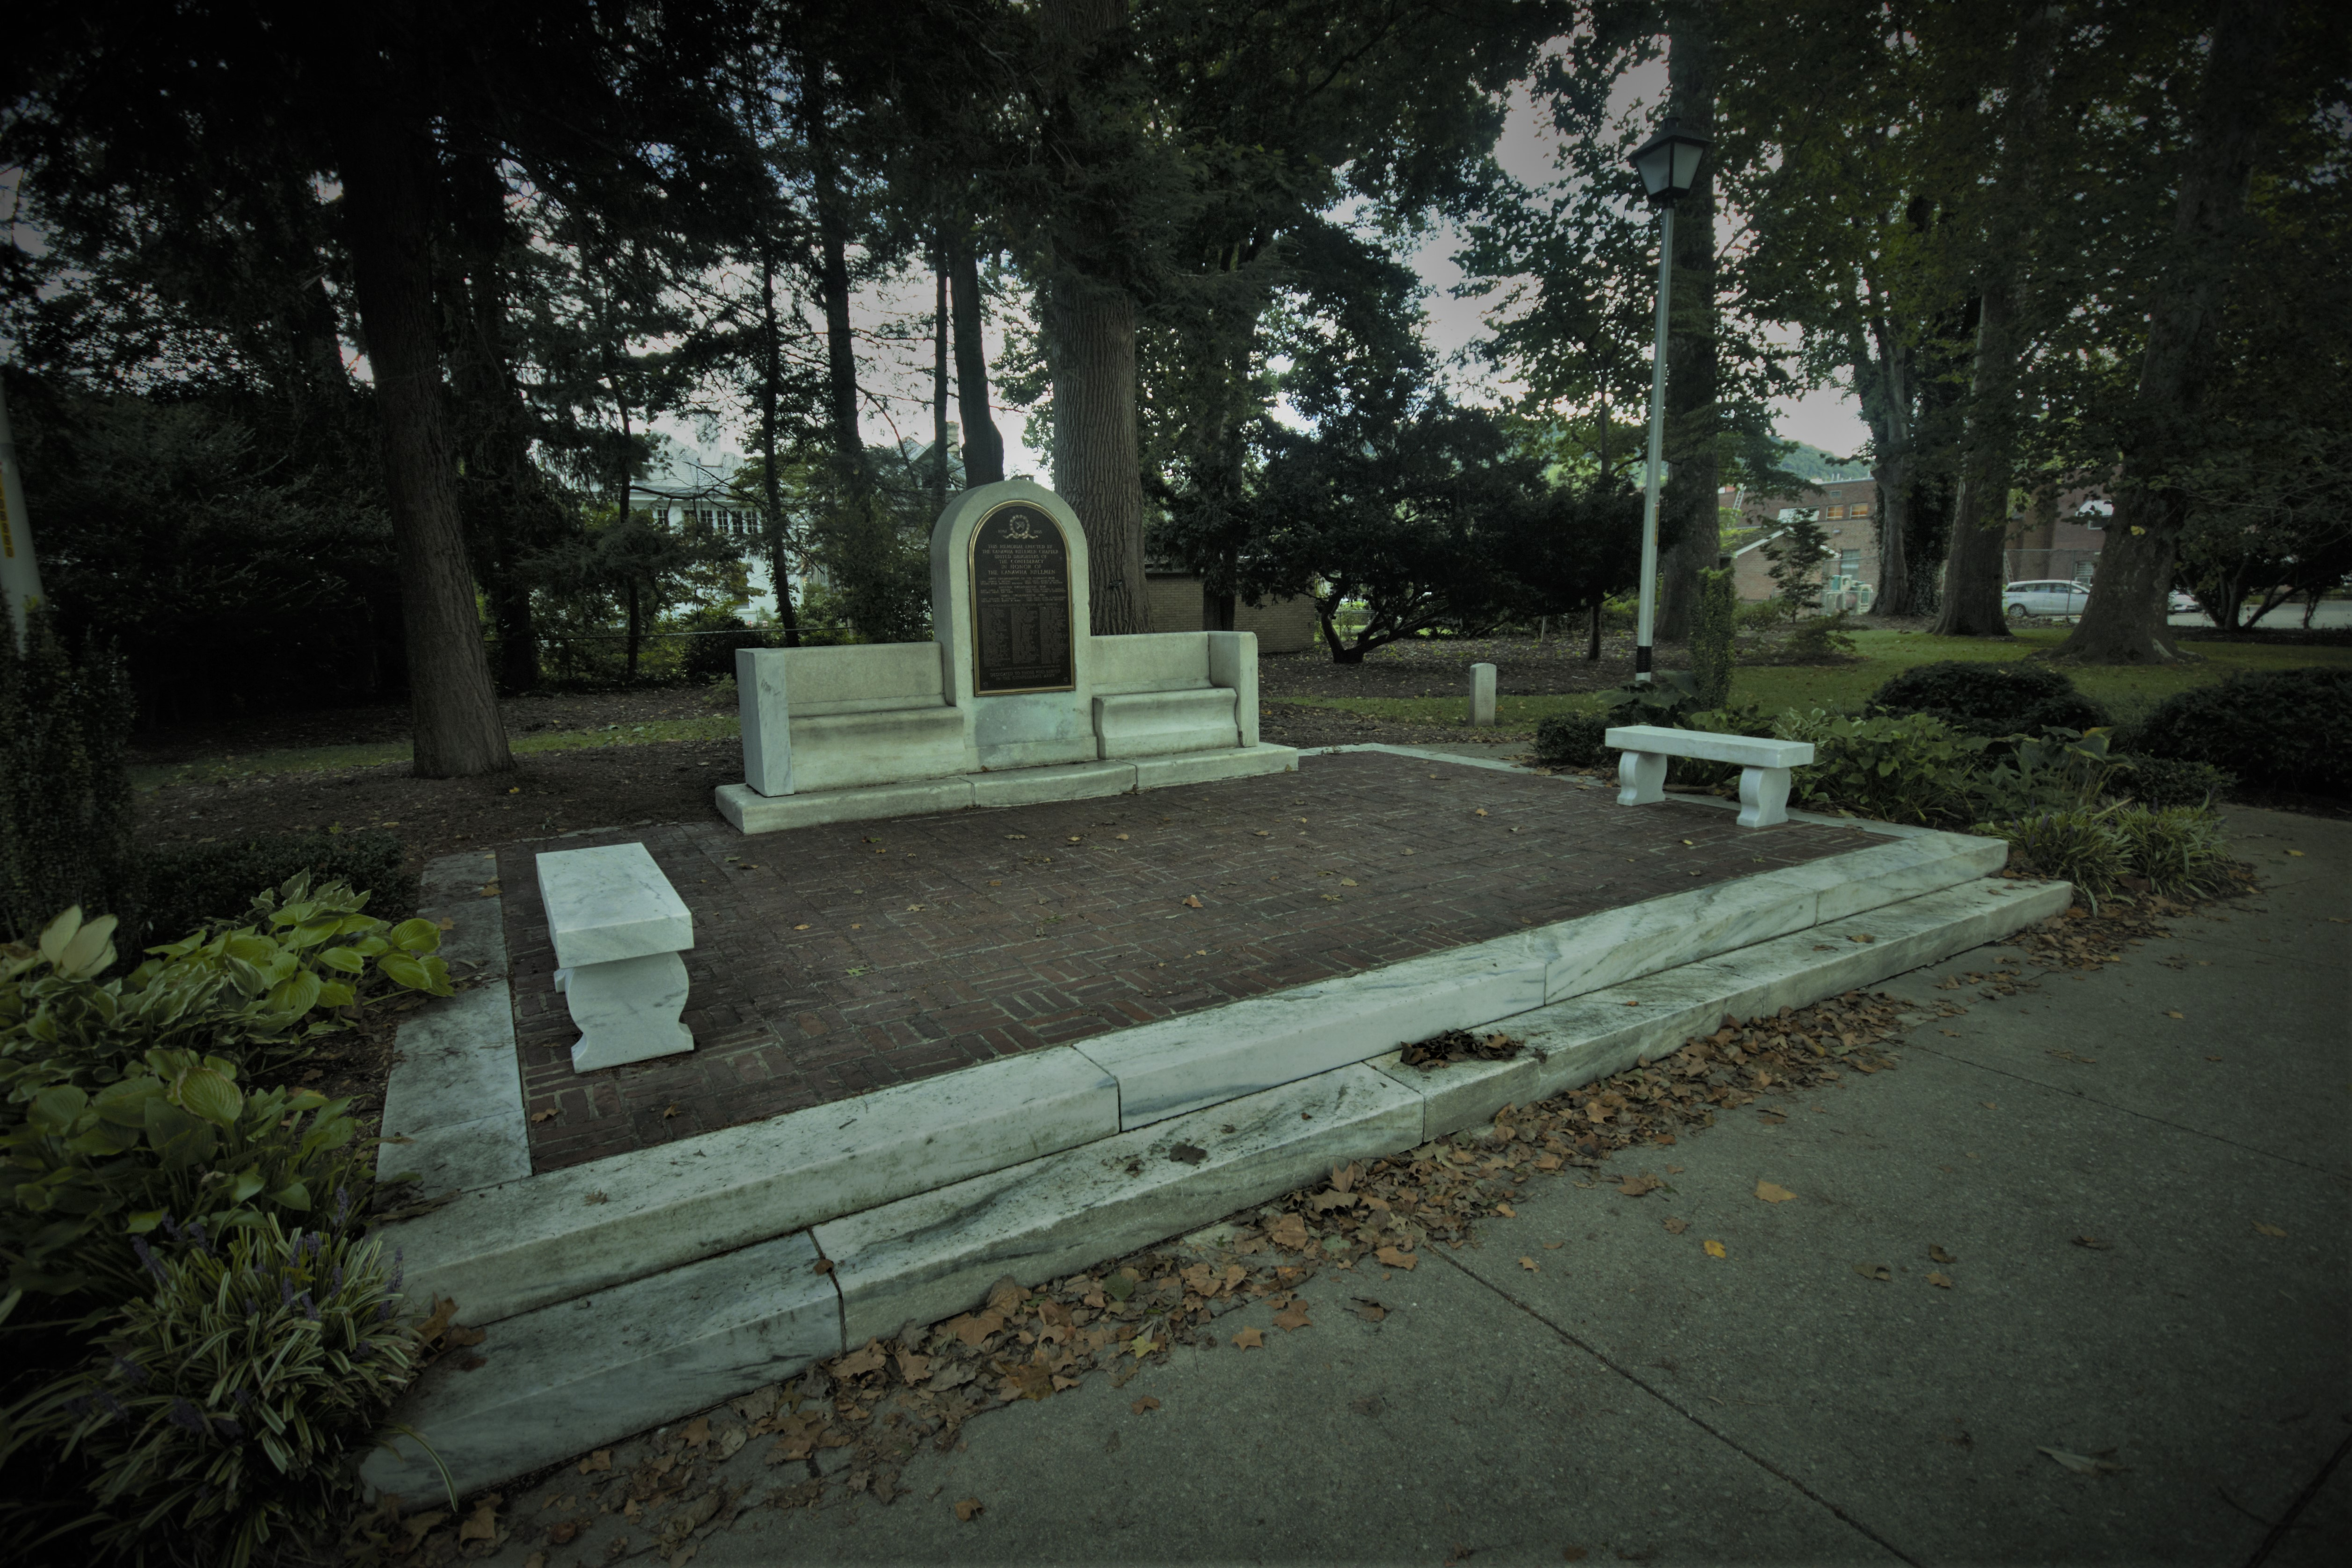 A wider view of the memorial, which resides at the center of the park.